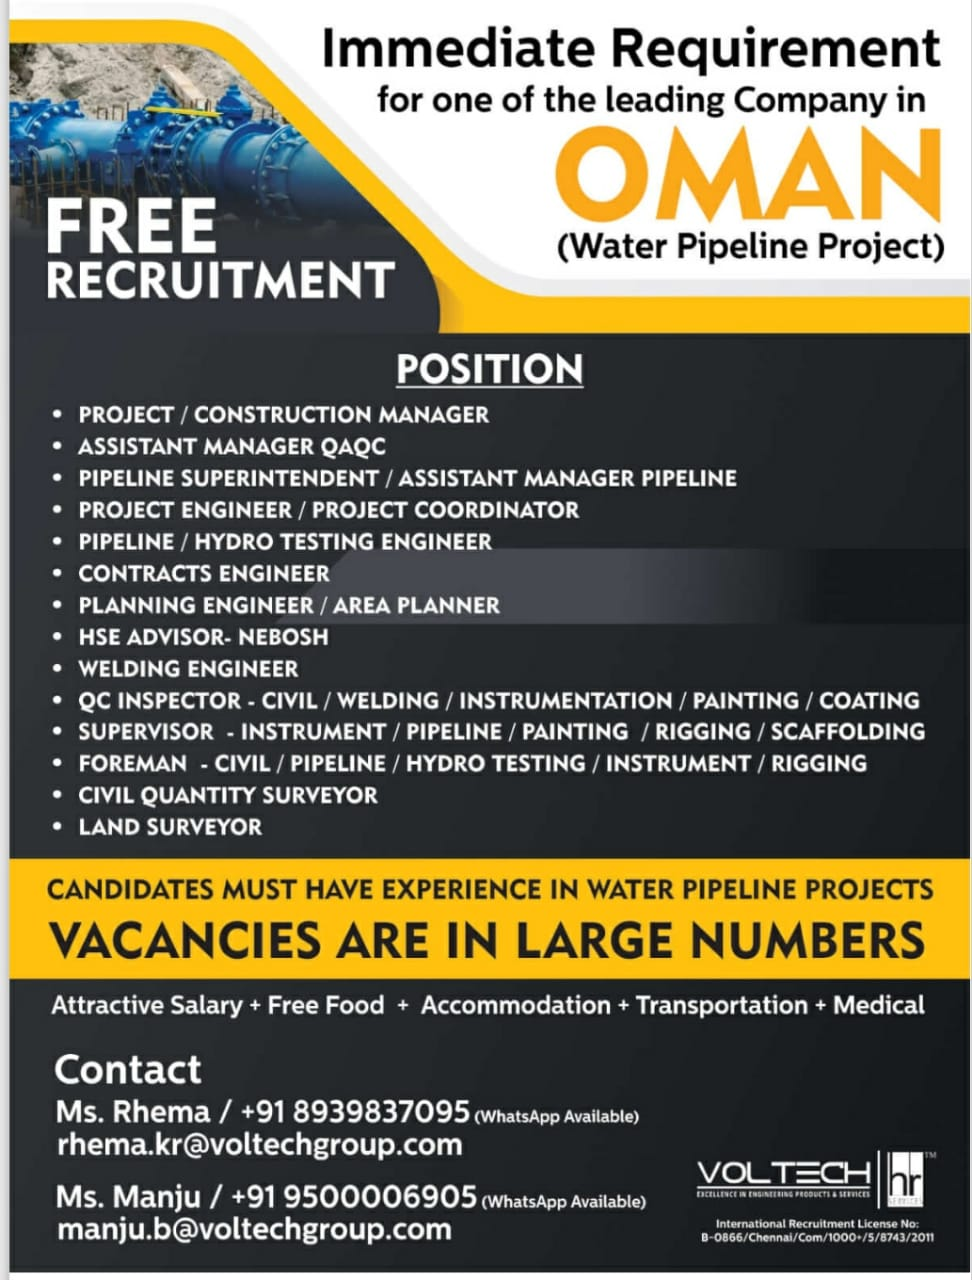 Immediate Requirement for one of the Company in OMAN  (Water Pipeline Project)